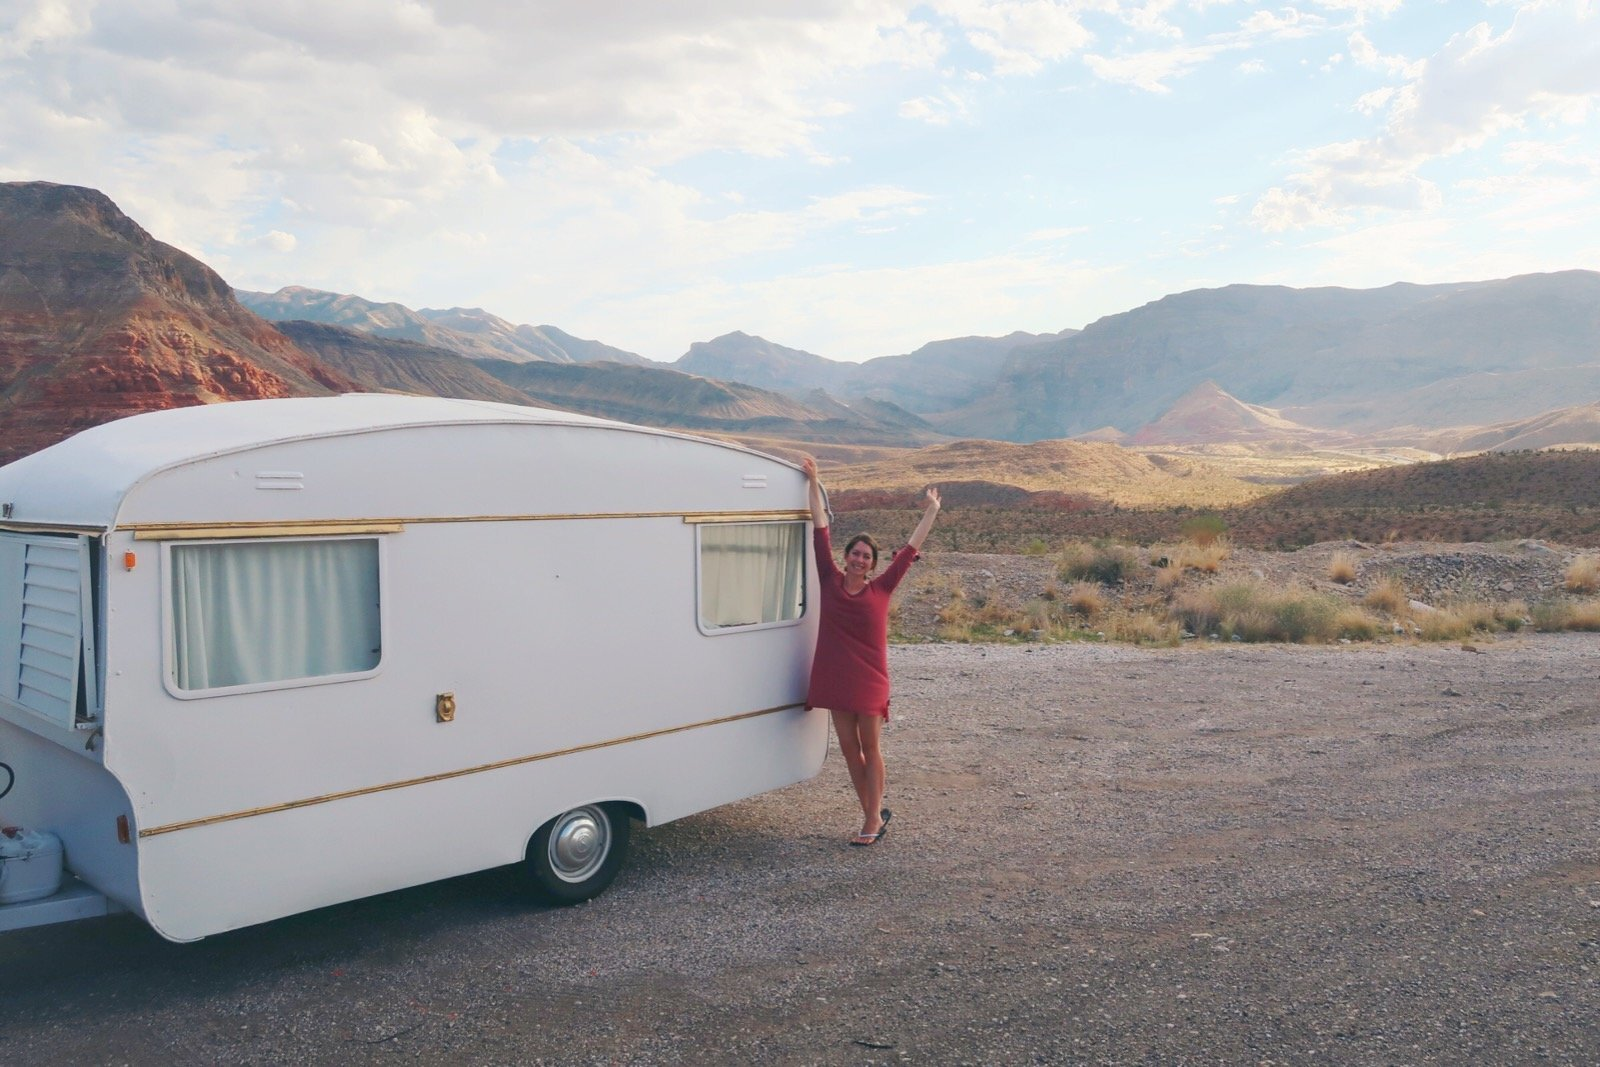 vintage-camper-classic-white-gold-reno-inspirations-ideas-boho-gypsy-hippy-pearl-musician-singer-songwriter-interior35